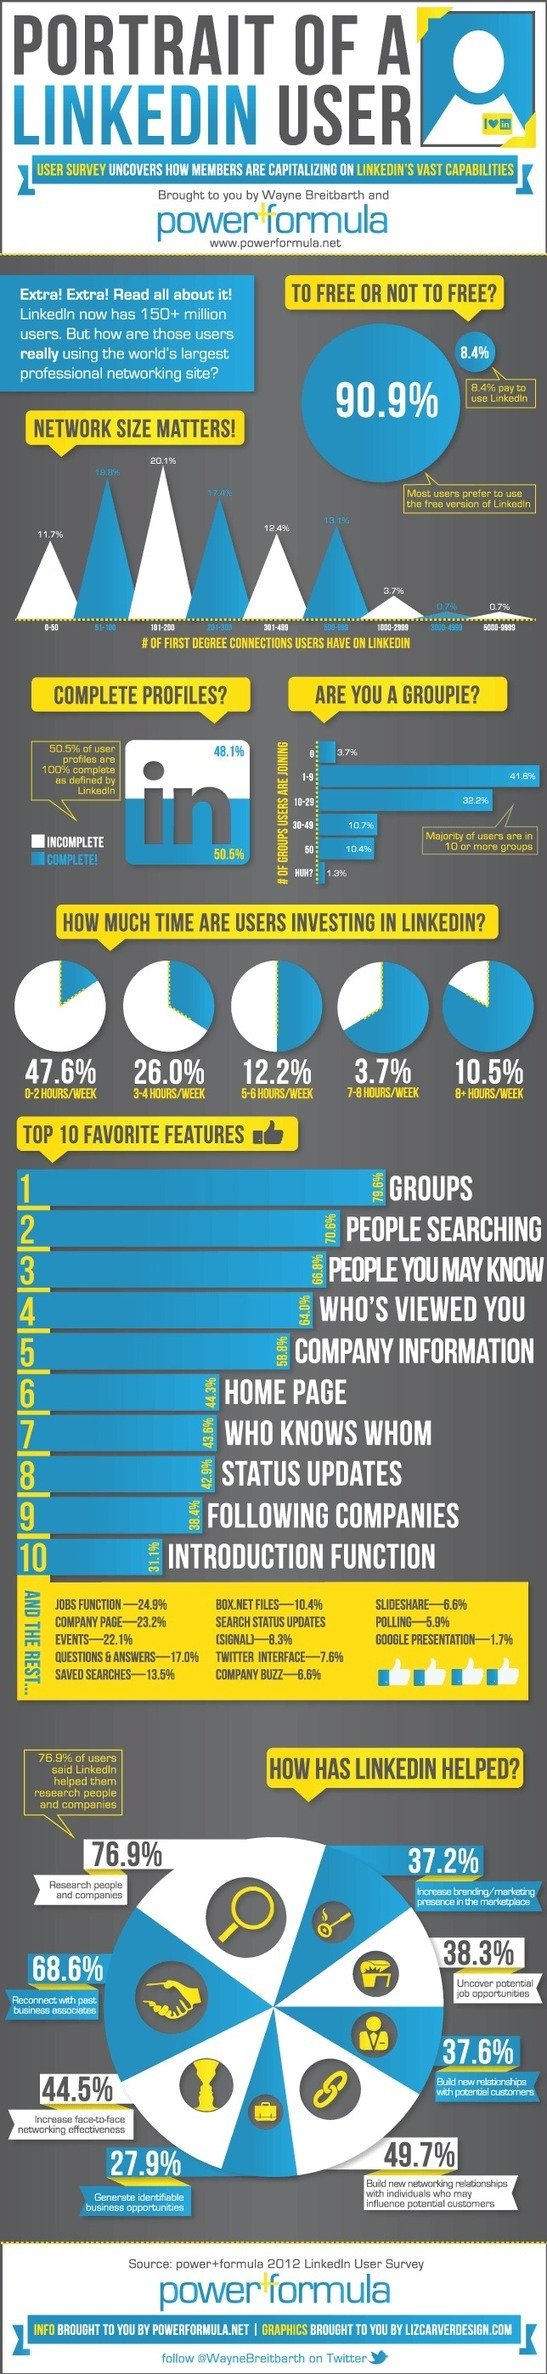 LinkedIn Infographic: Want To Know What Others Are Doing? | Beyond Marketing